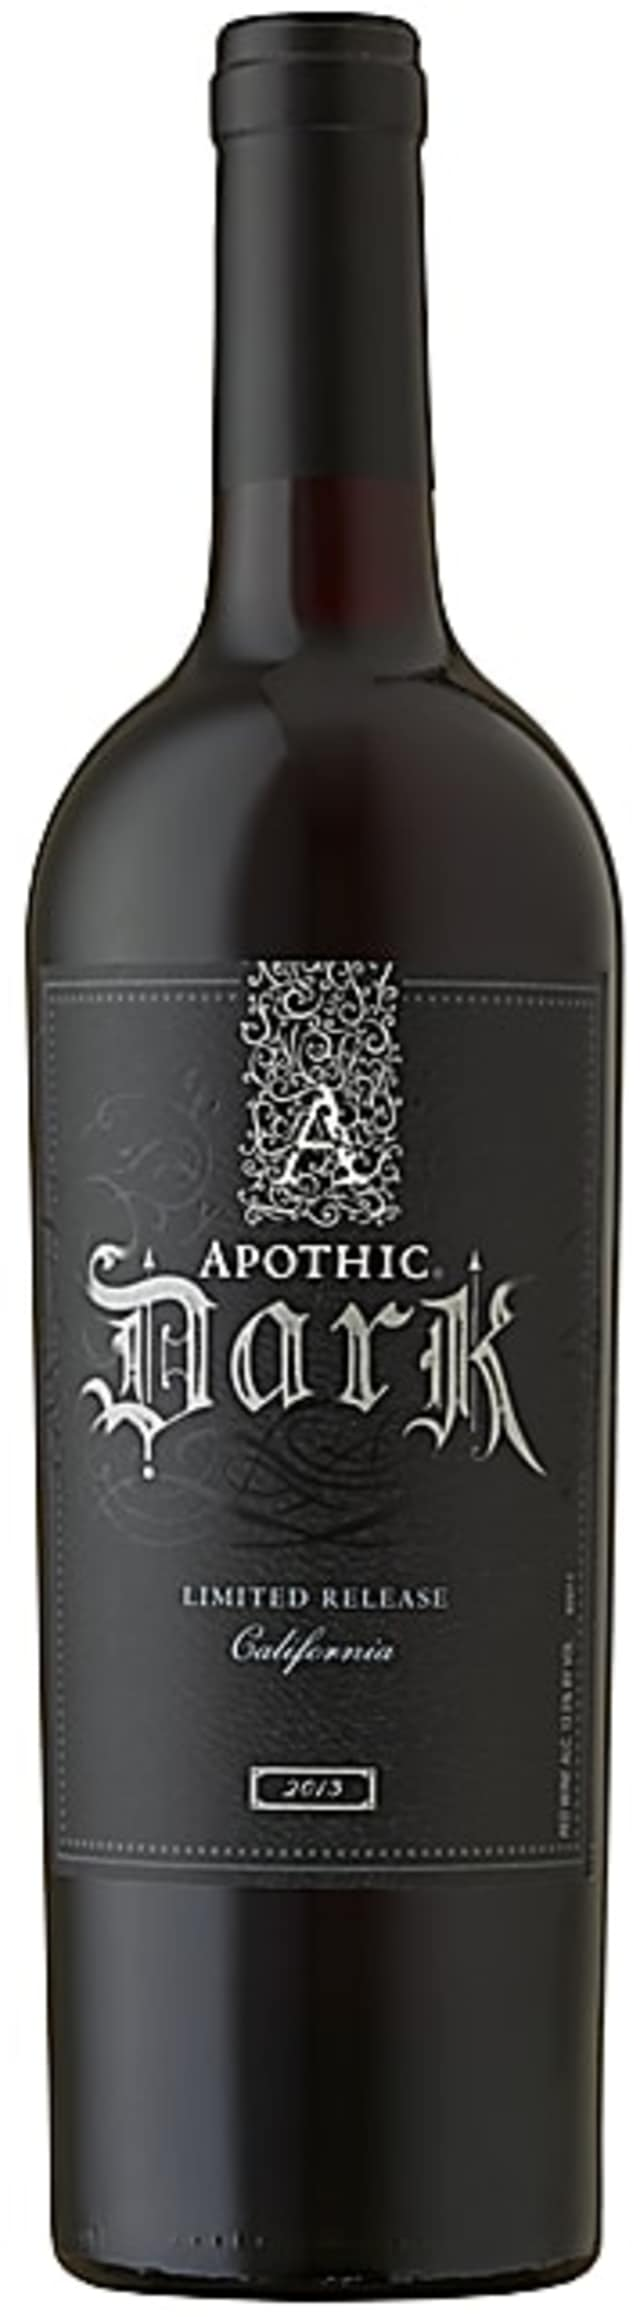 The $14 Apothic Dark is sold in limited editions.